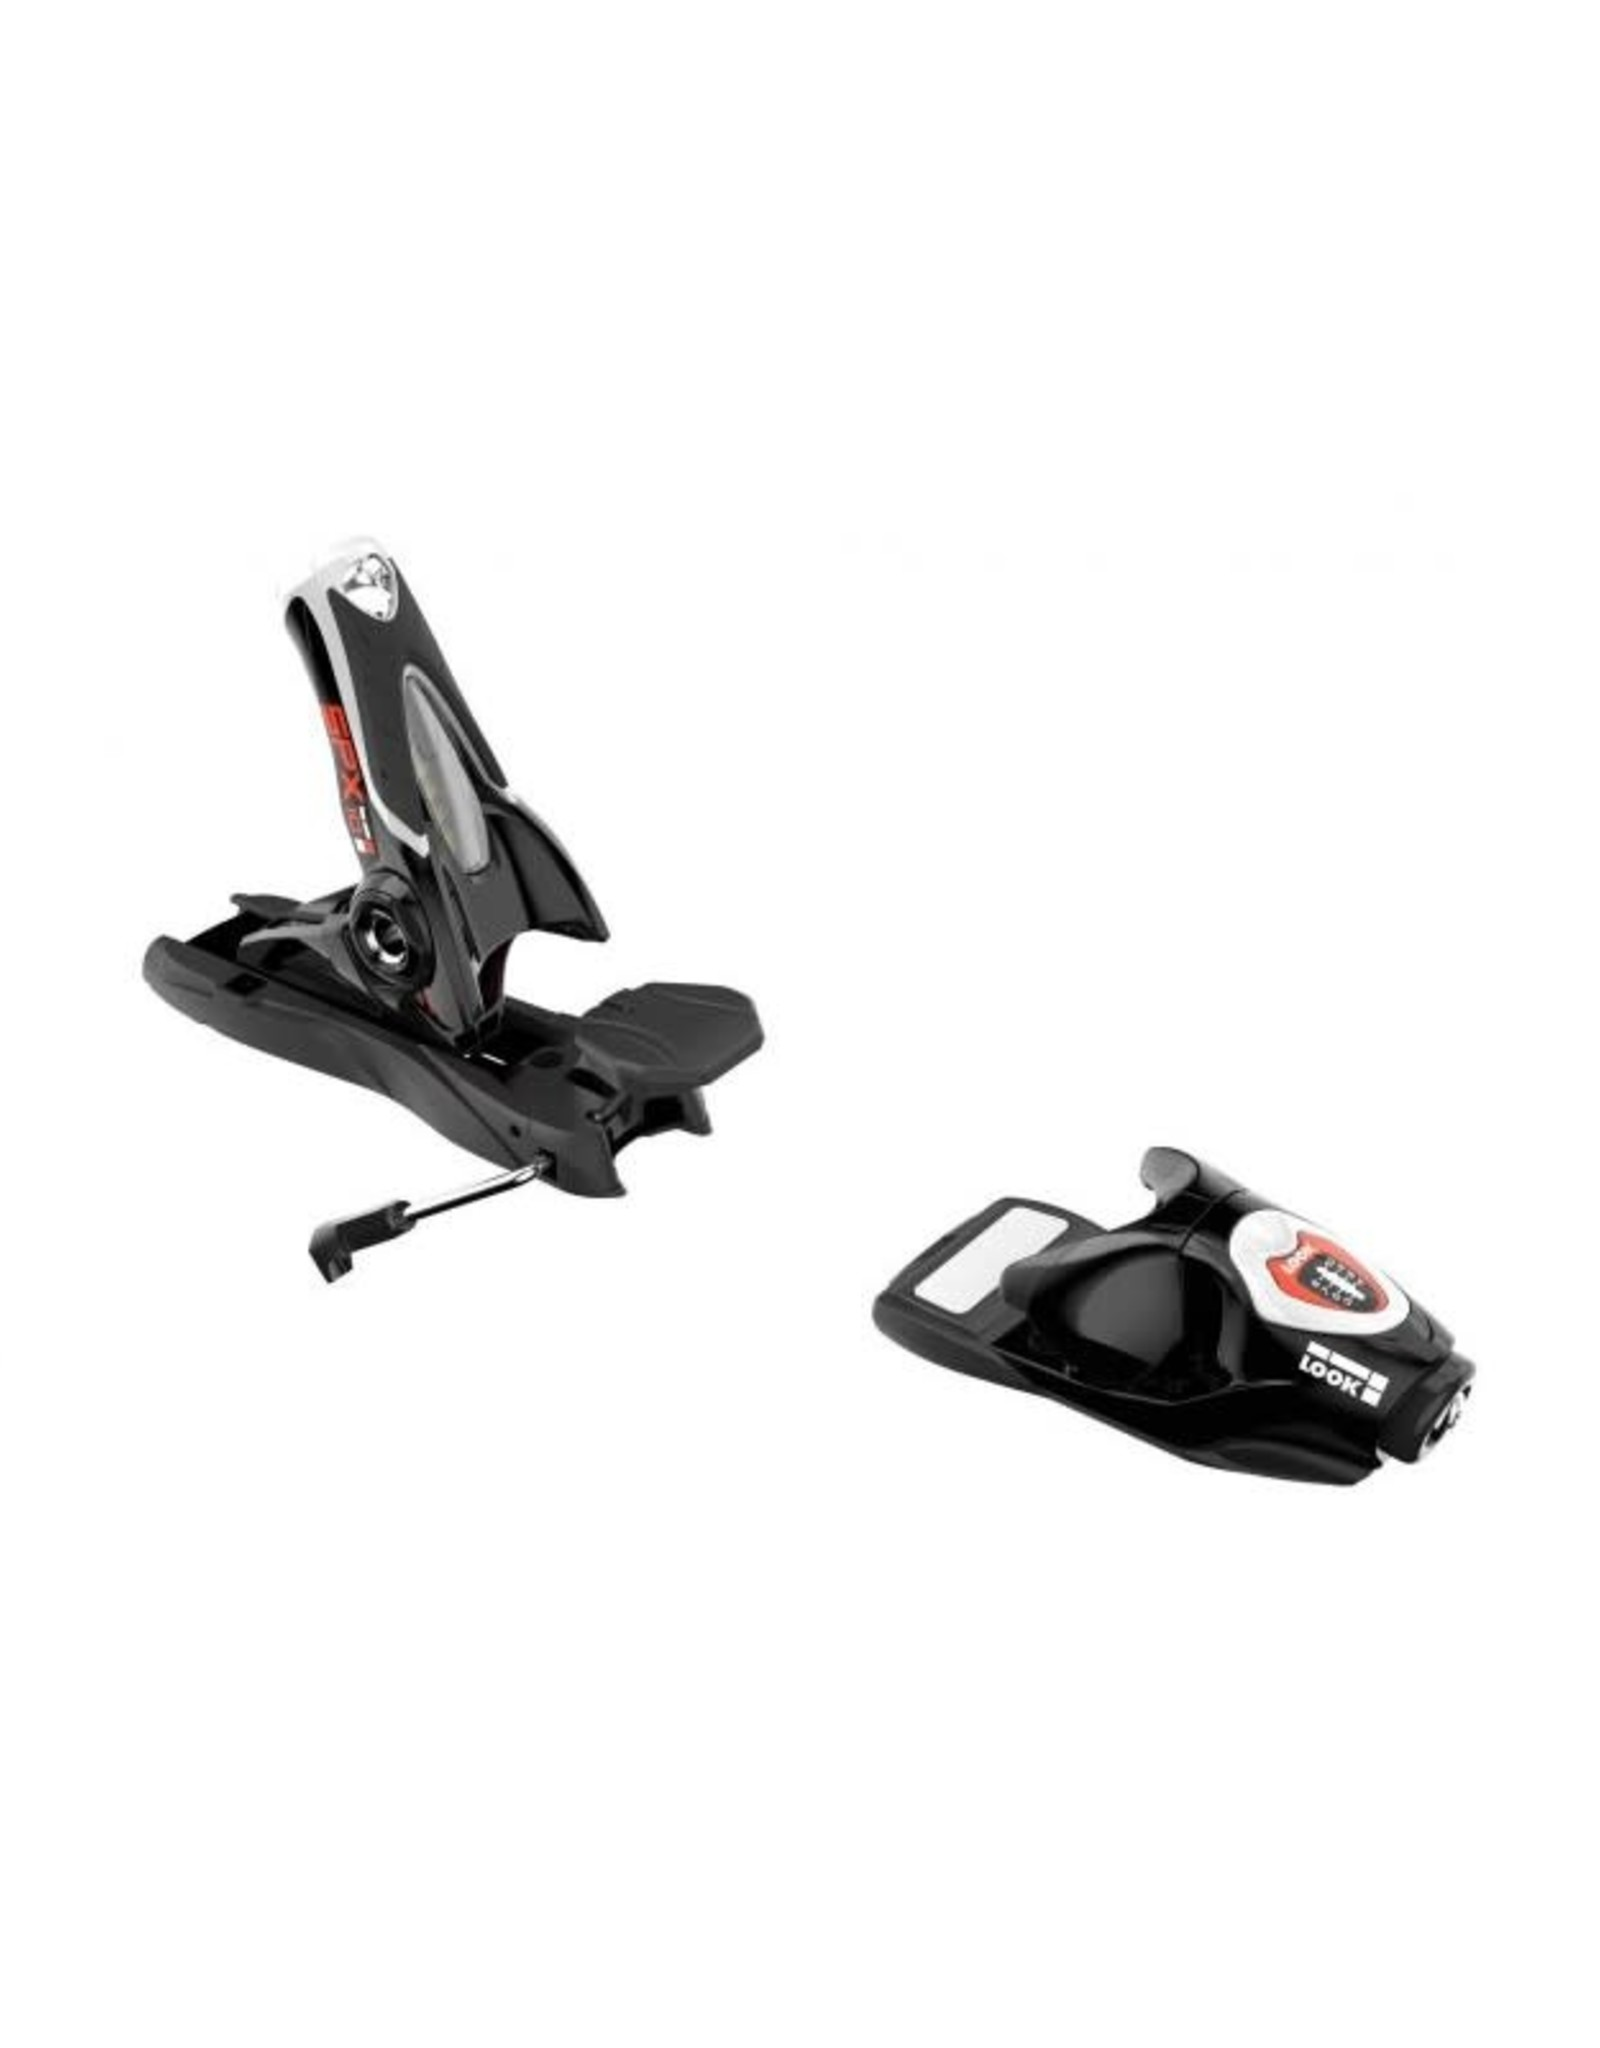 Look Ski Bindings SPX 10 B73